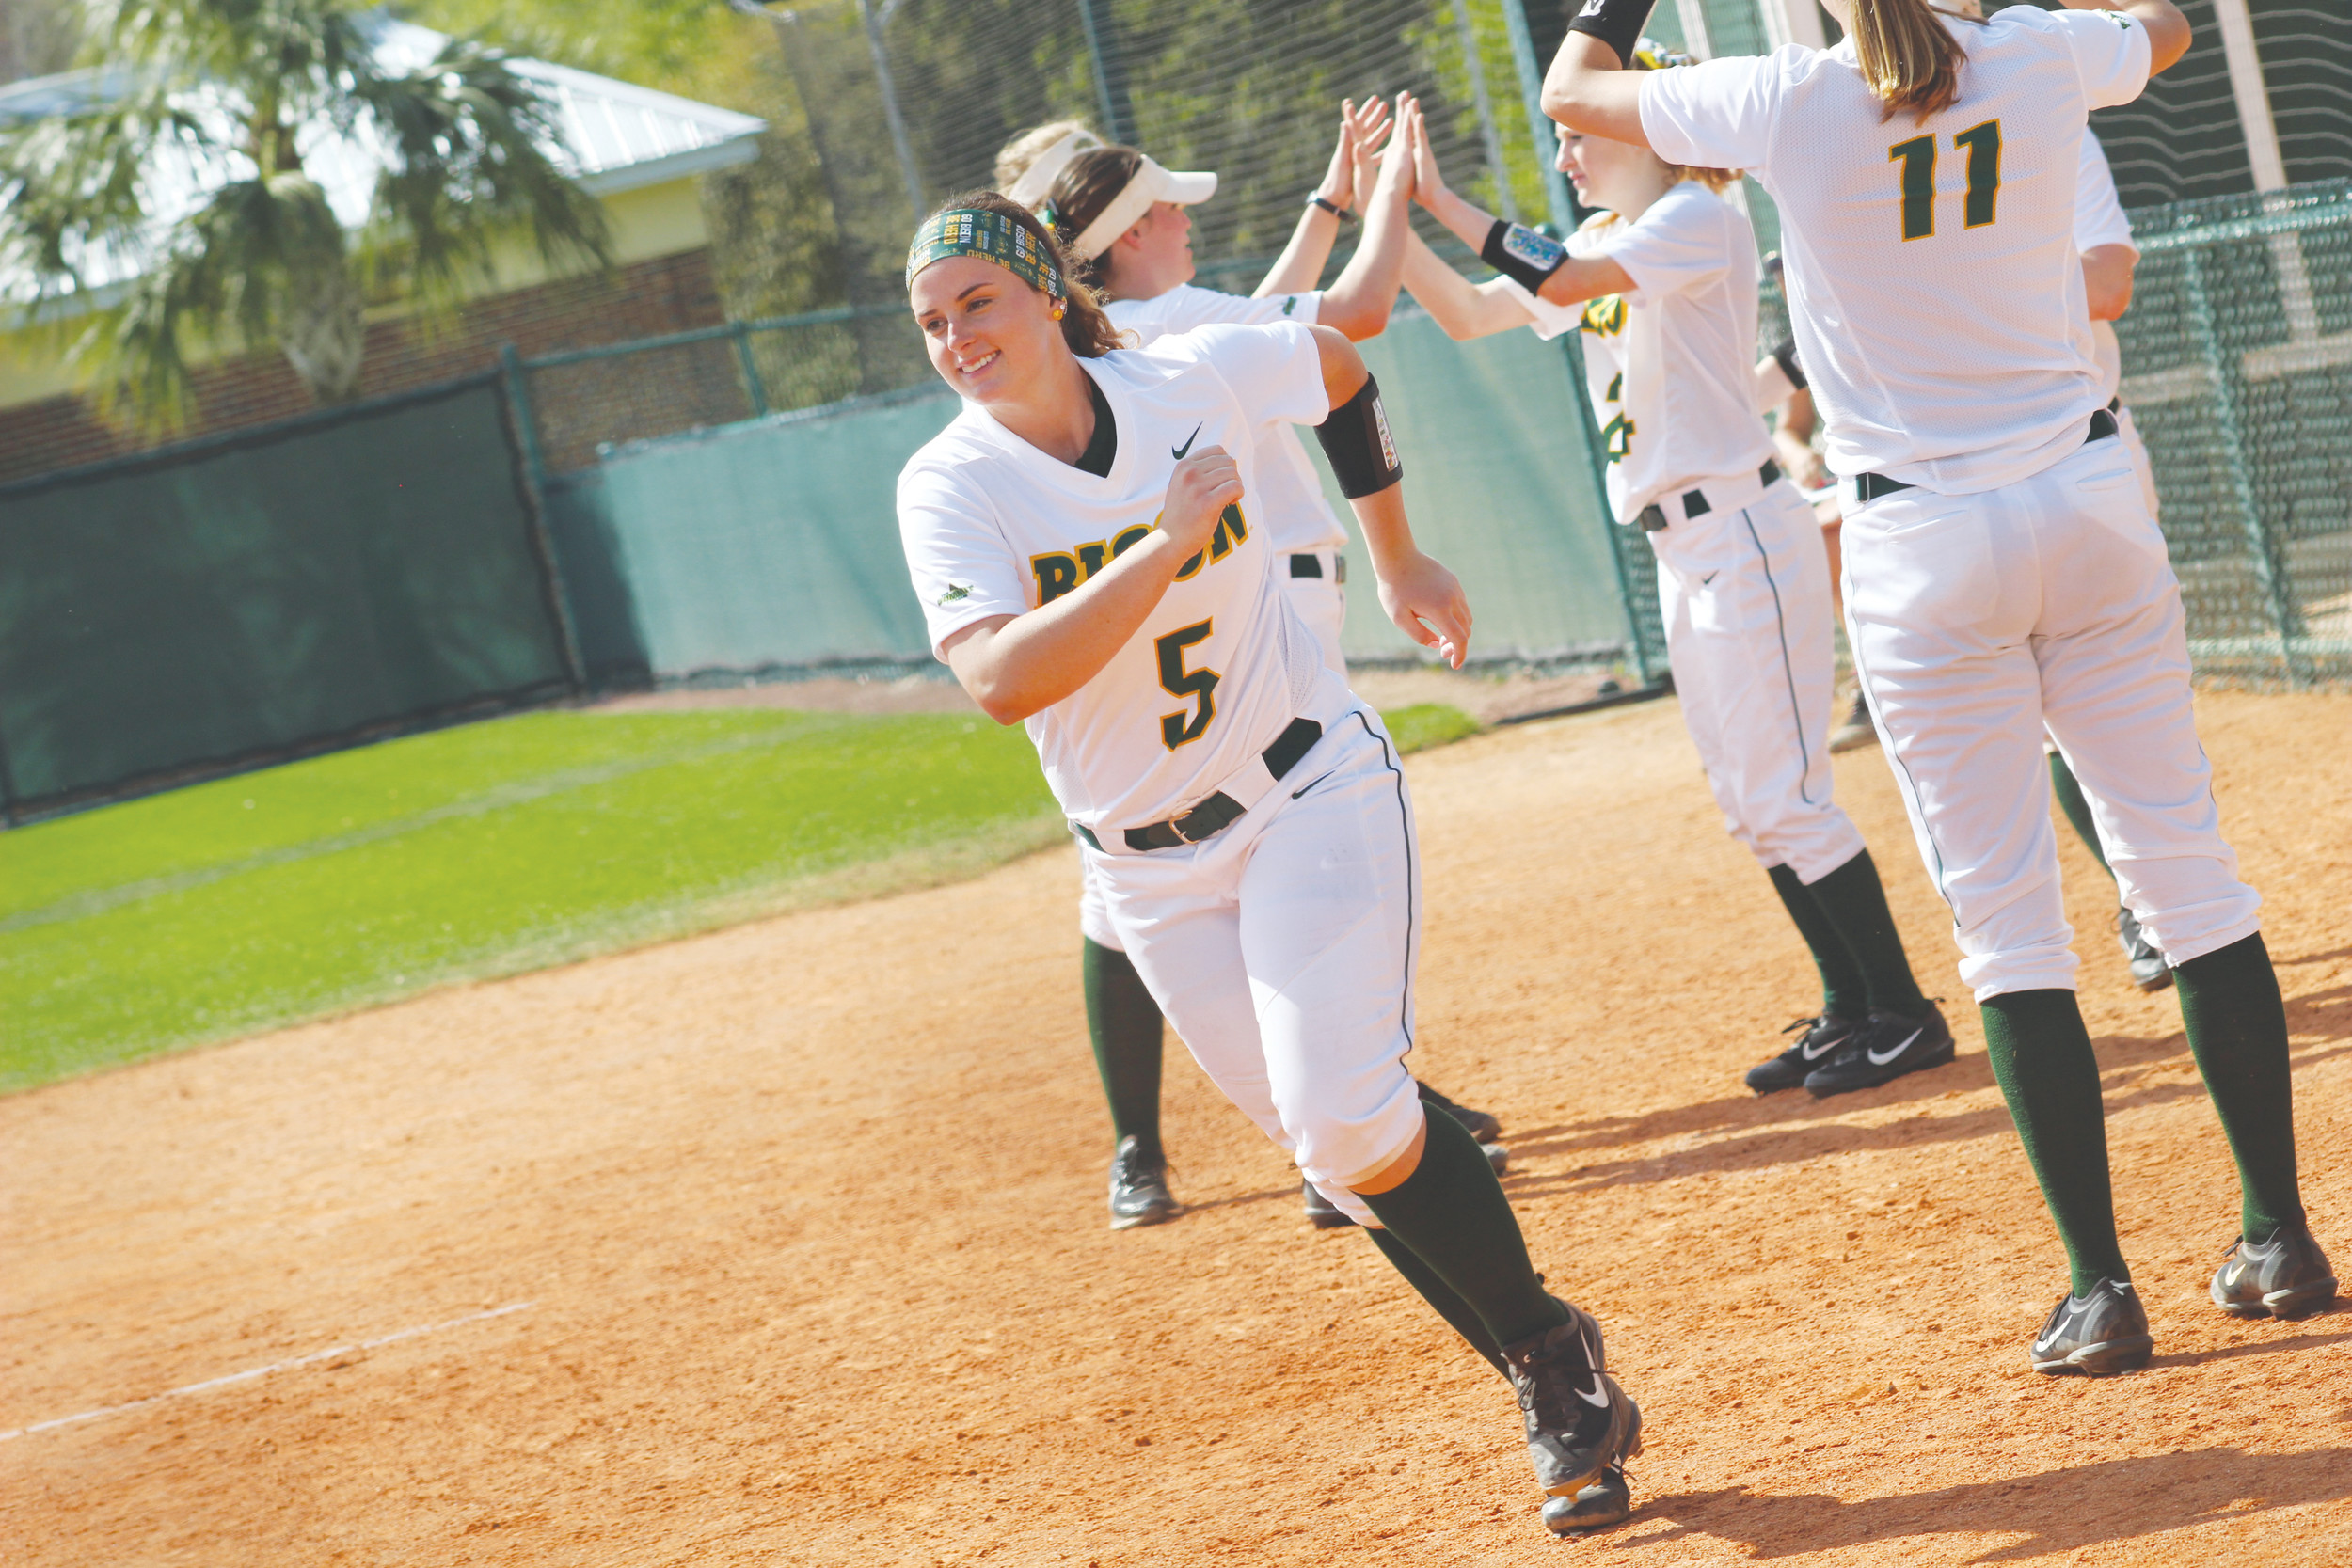 North Dakota State University softball pitcher K.K. Leddy smiles during introductions in game against Columbia University Saturday in Deland.